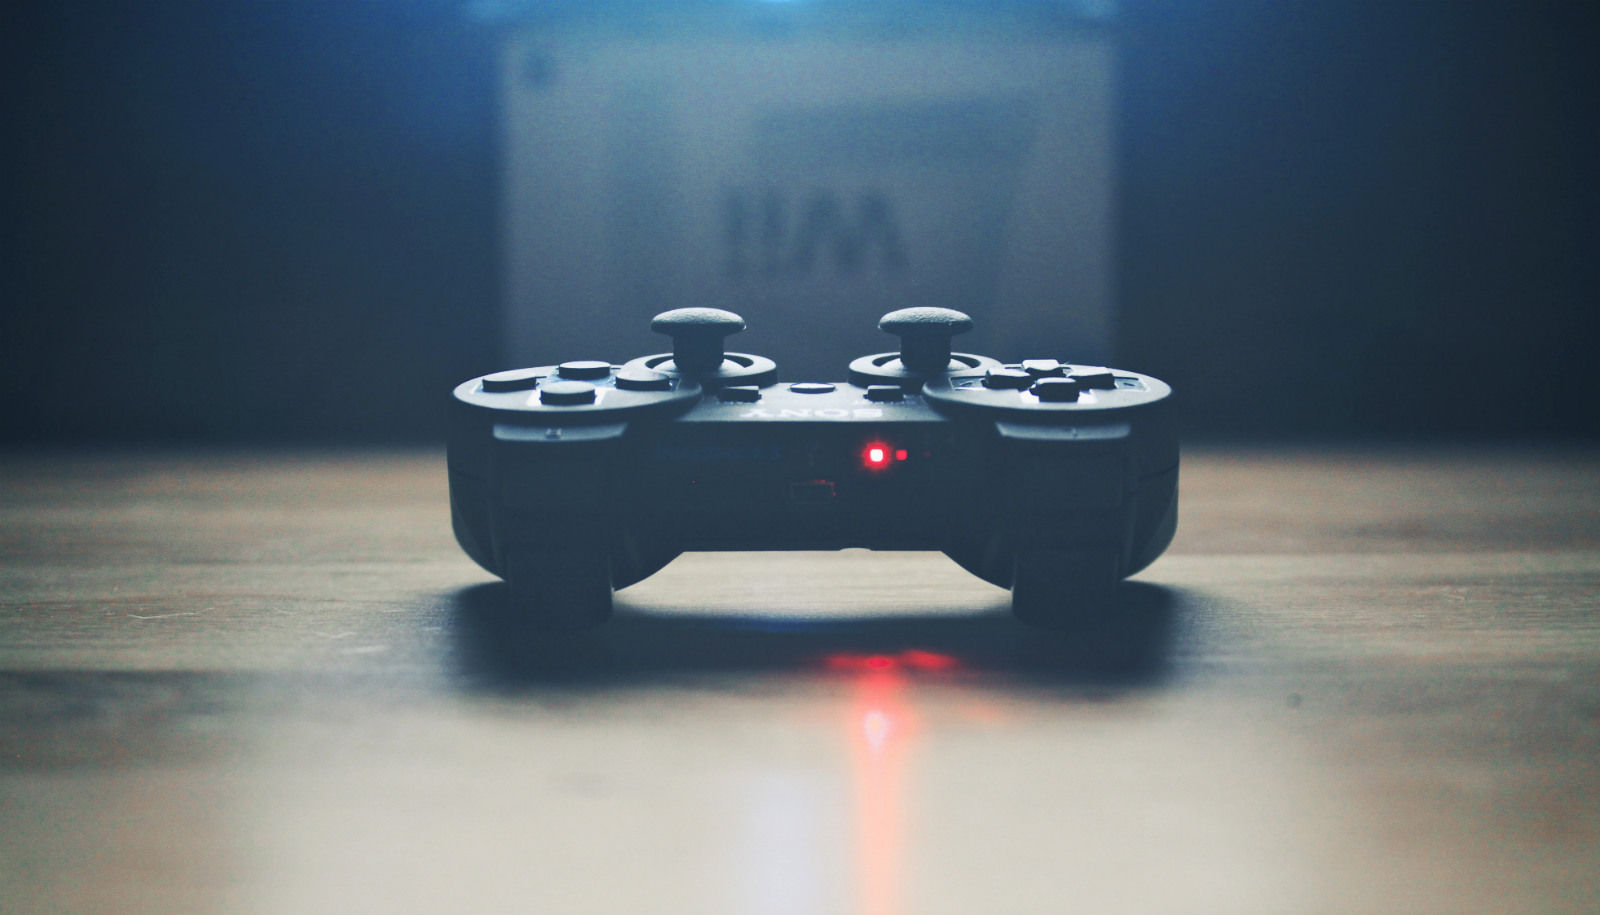 Your kid's video game addiction may be perfectly normal